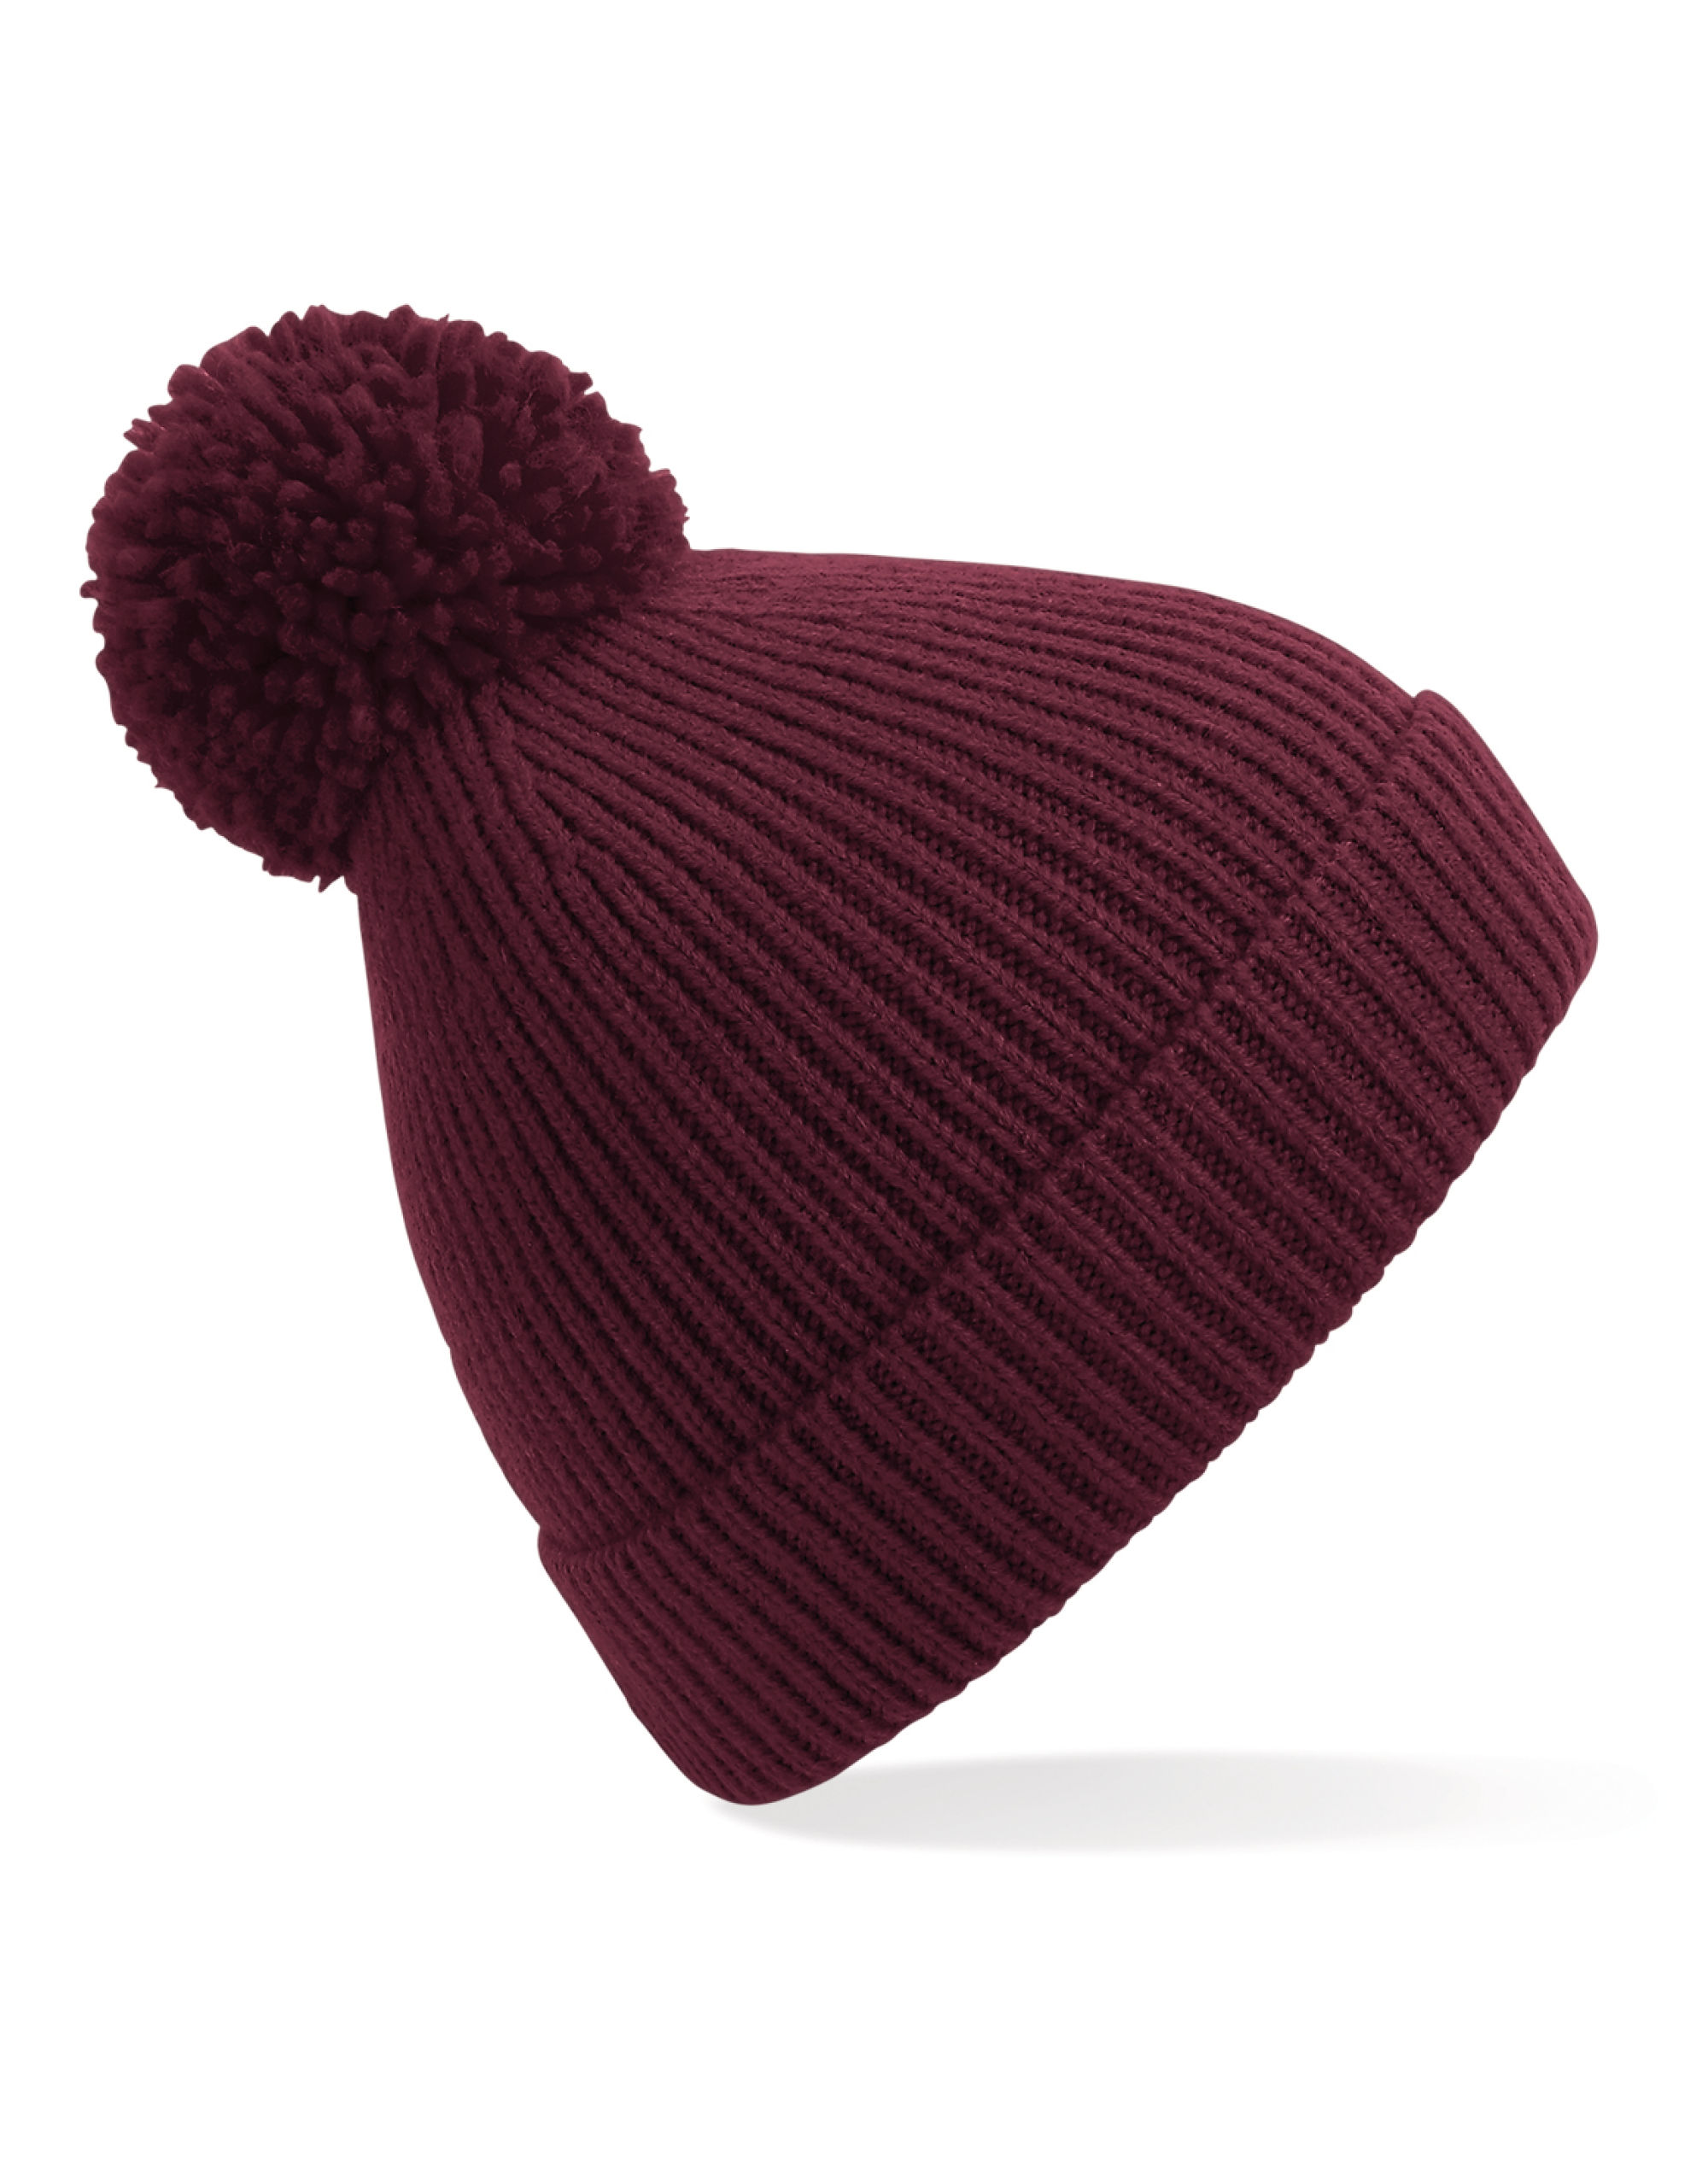 Beechfield  Engineered Knit Ribbed Pom Pom Beanie